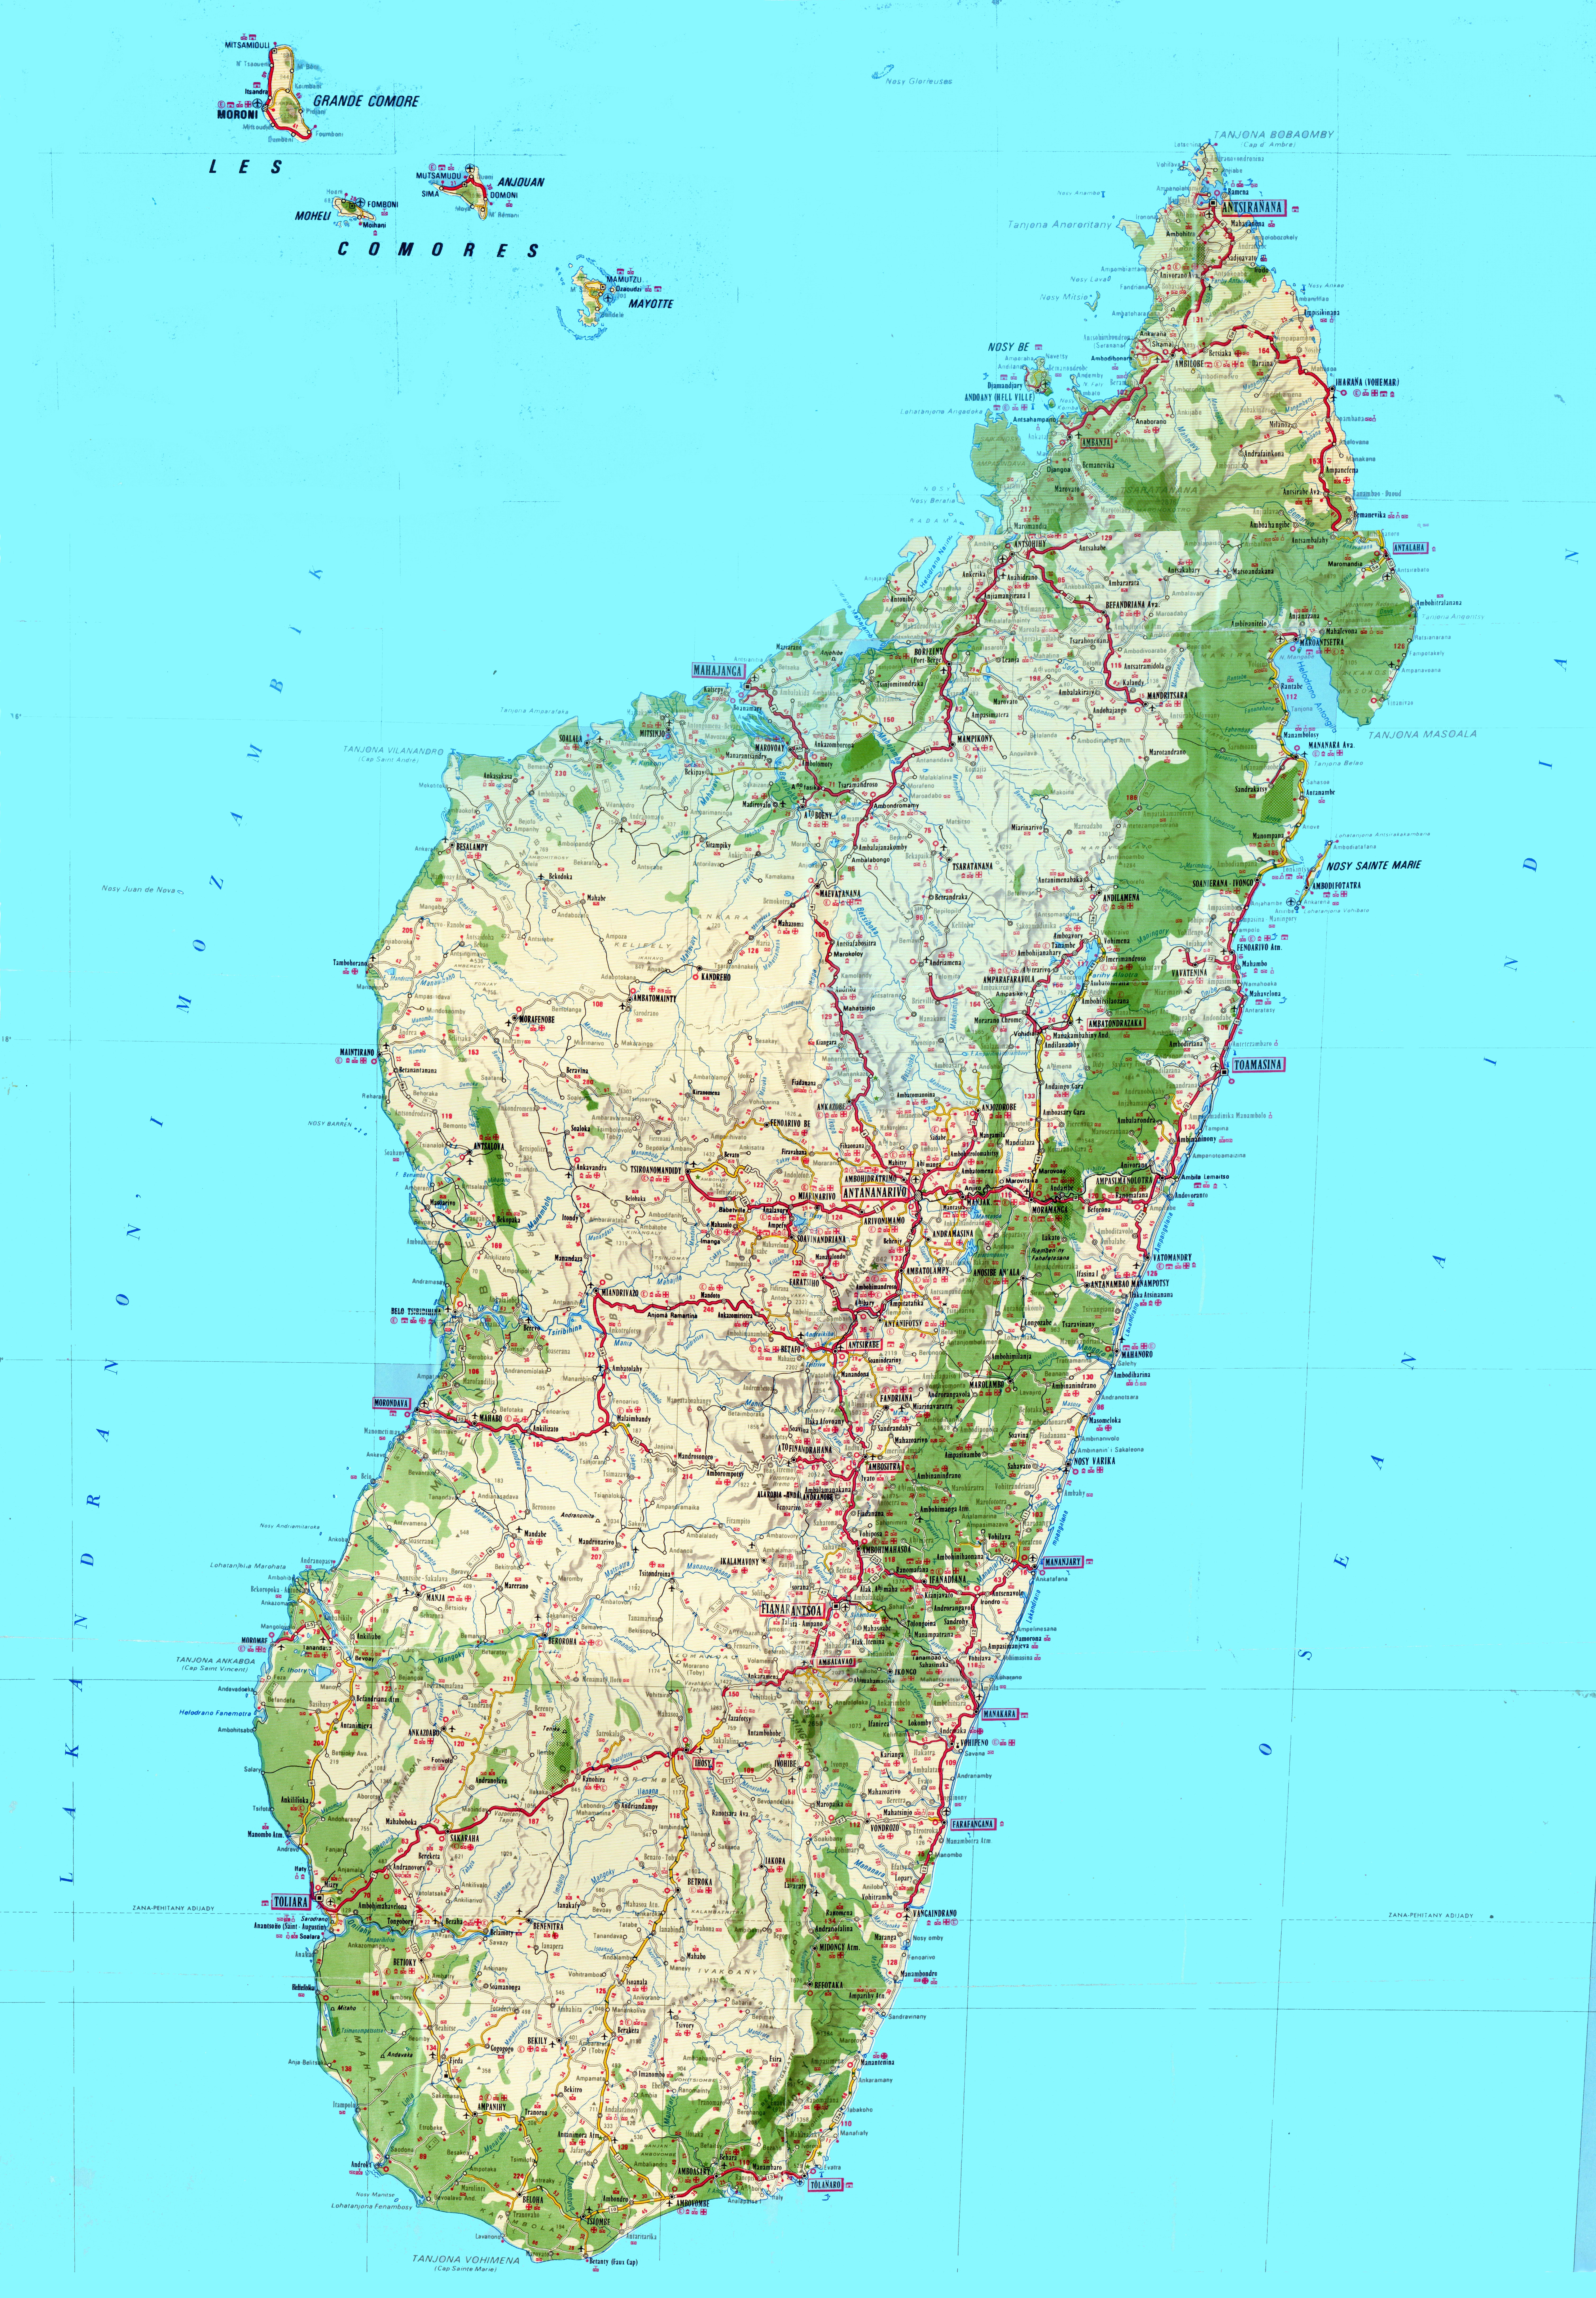 Large scale detailed topographic and tourist map of Madagascar with